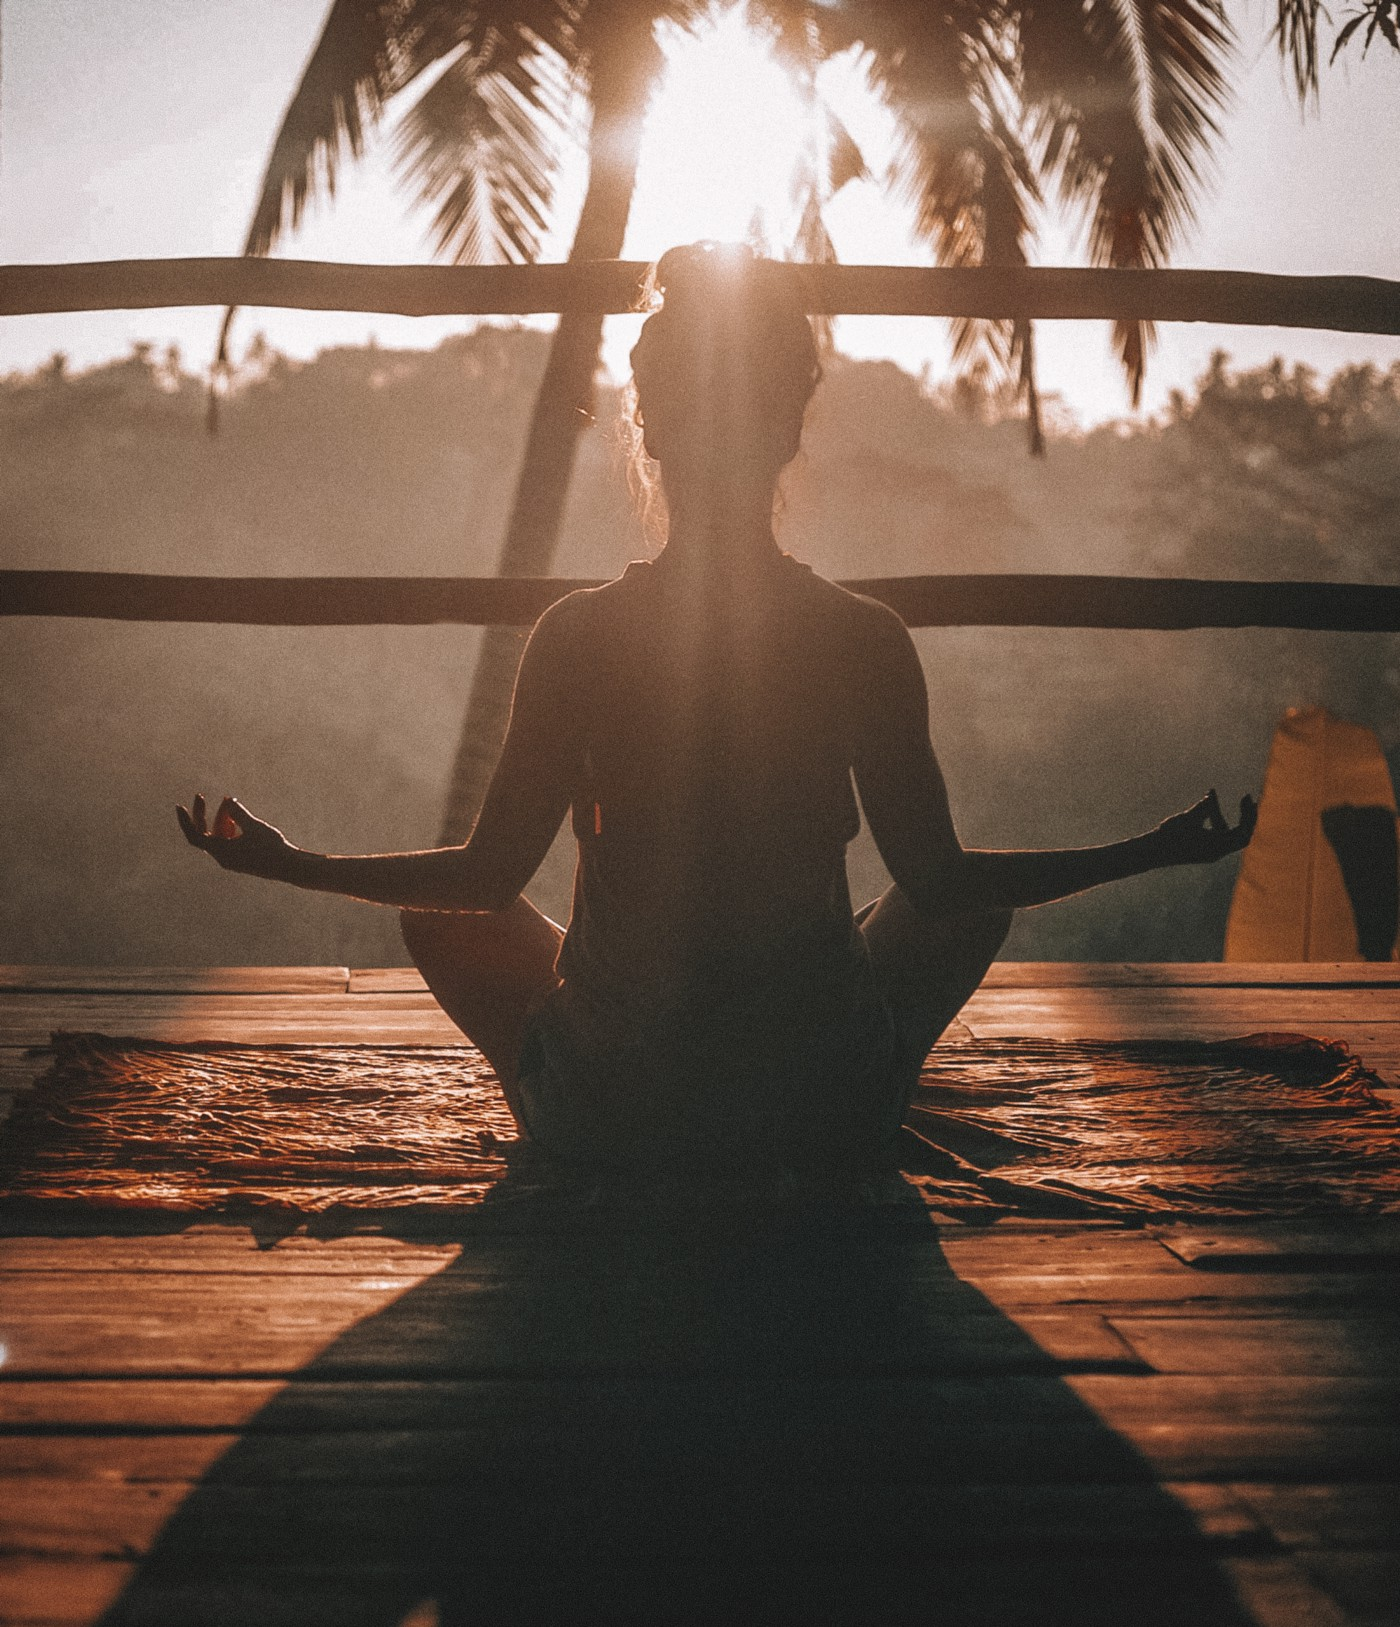 Person meditating in front of a slowly descending sun.